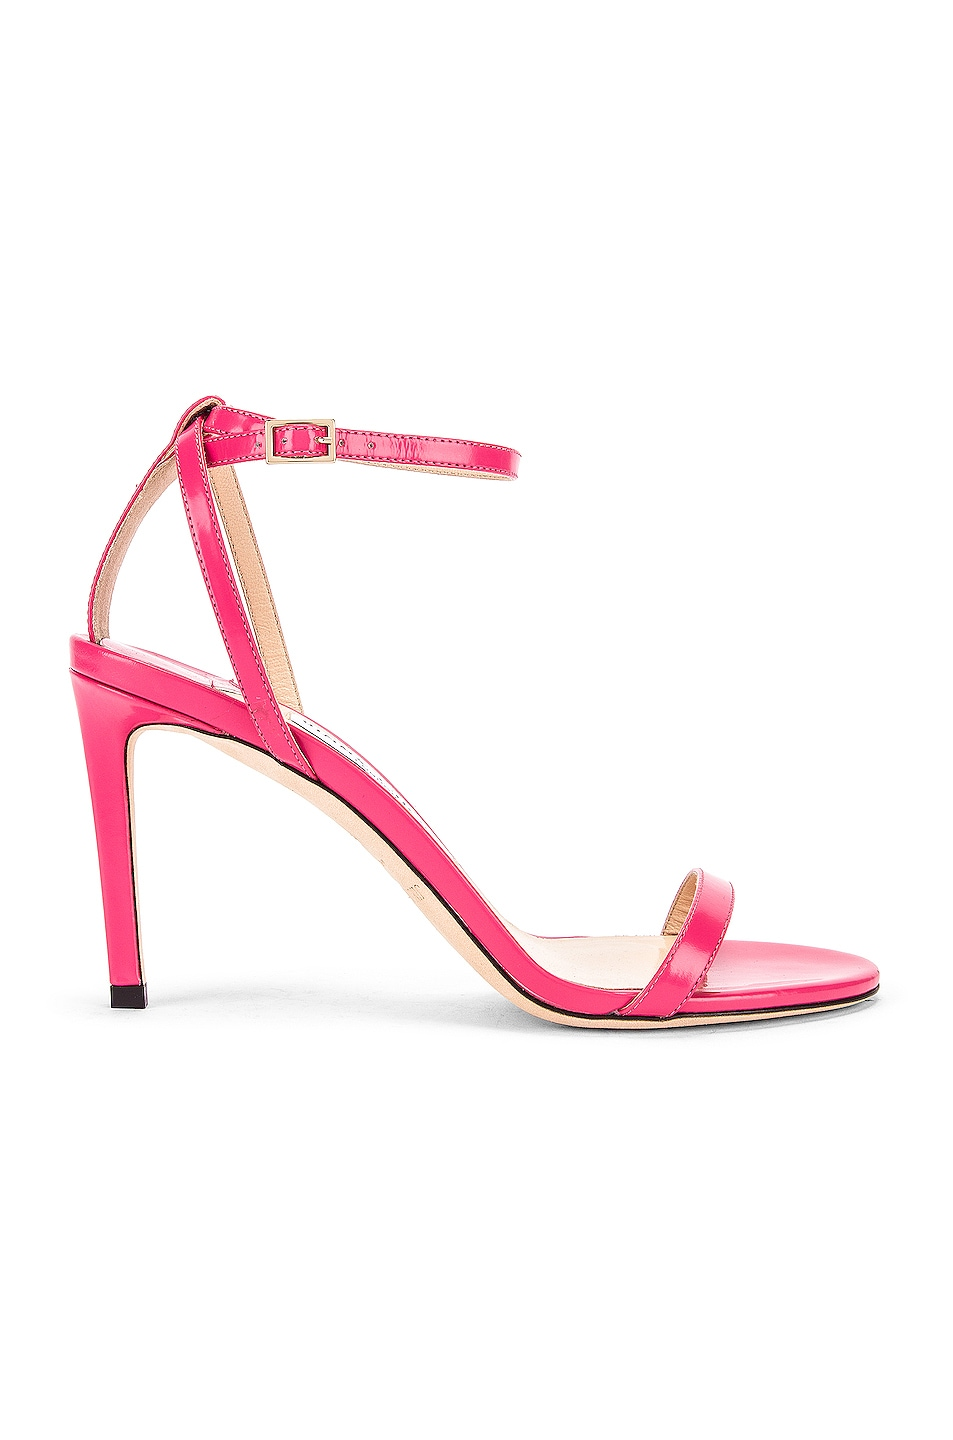 Image 1 of Jimmy Choo Minny 85 Liquid Leather Sandal in Bubble